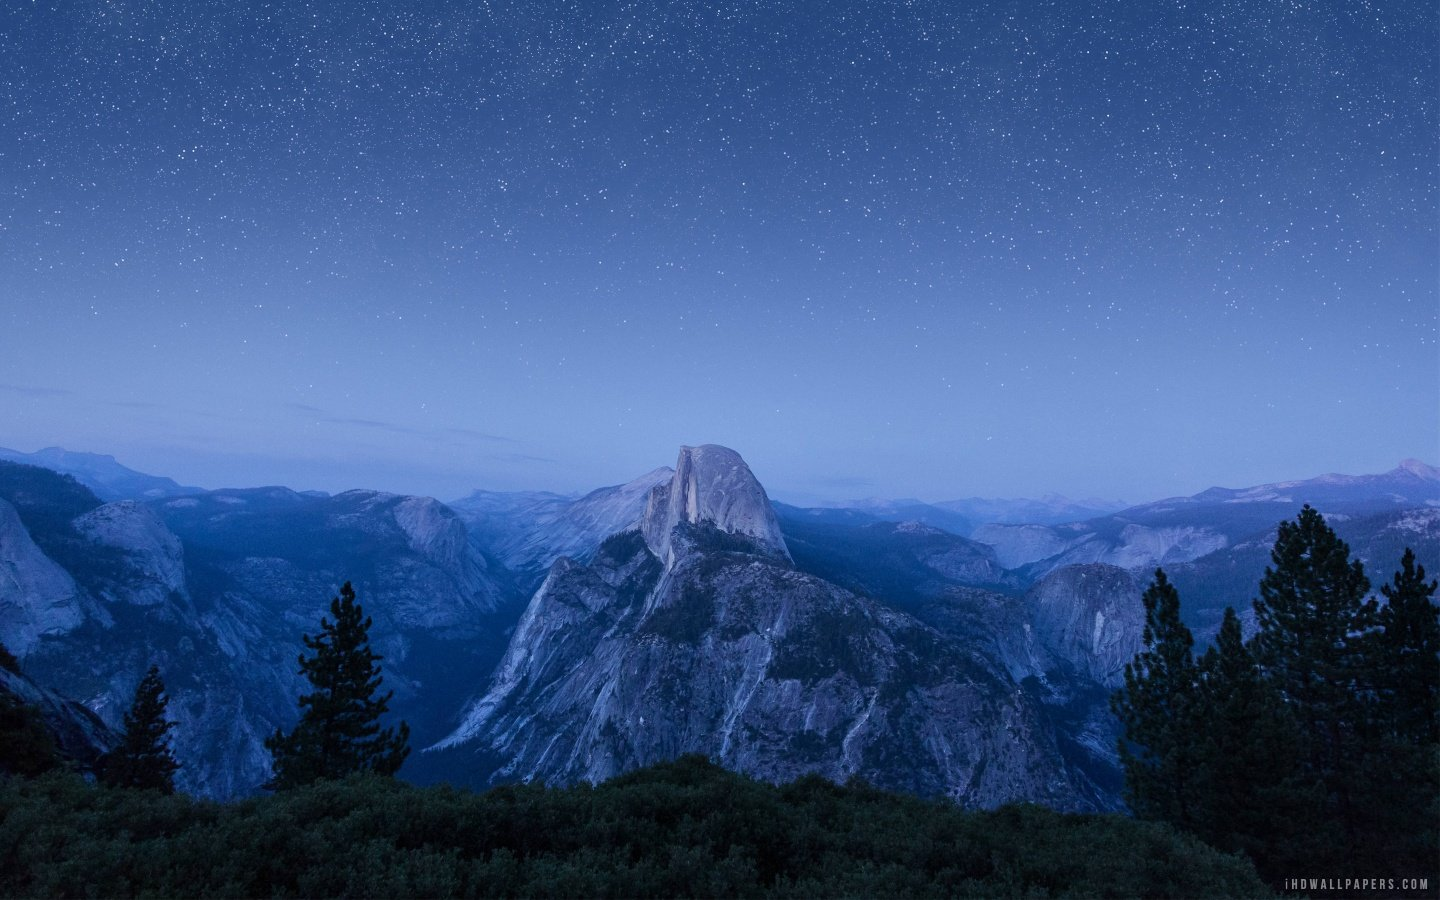 Apple OS X El Capitan HD Wallpaper   iHD Wallpapers 1440x900